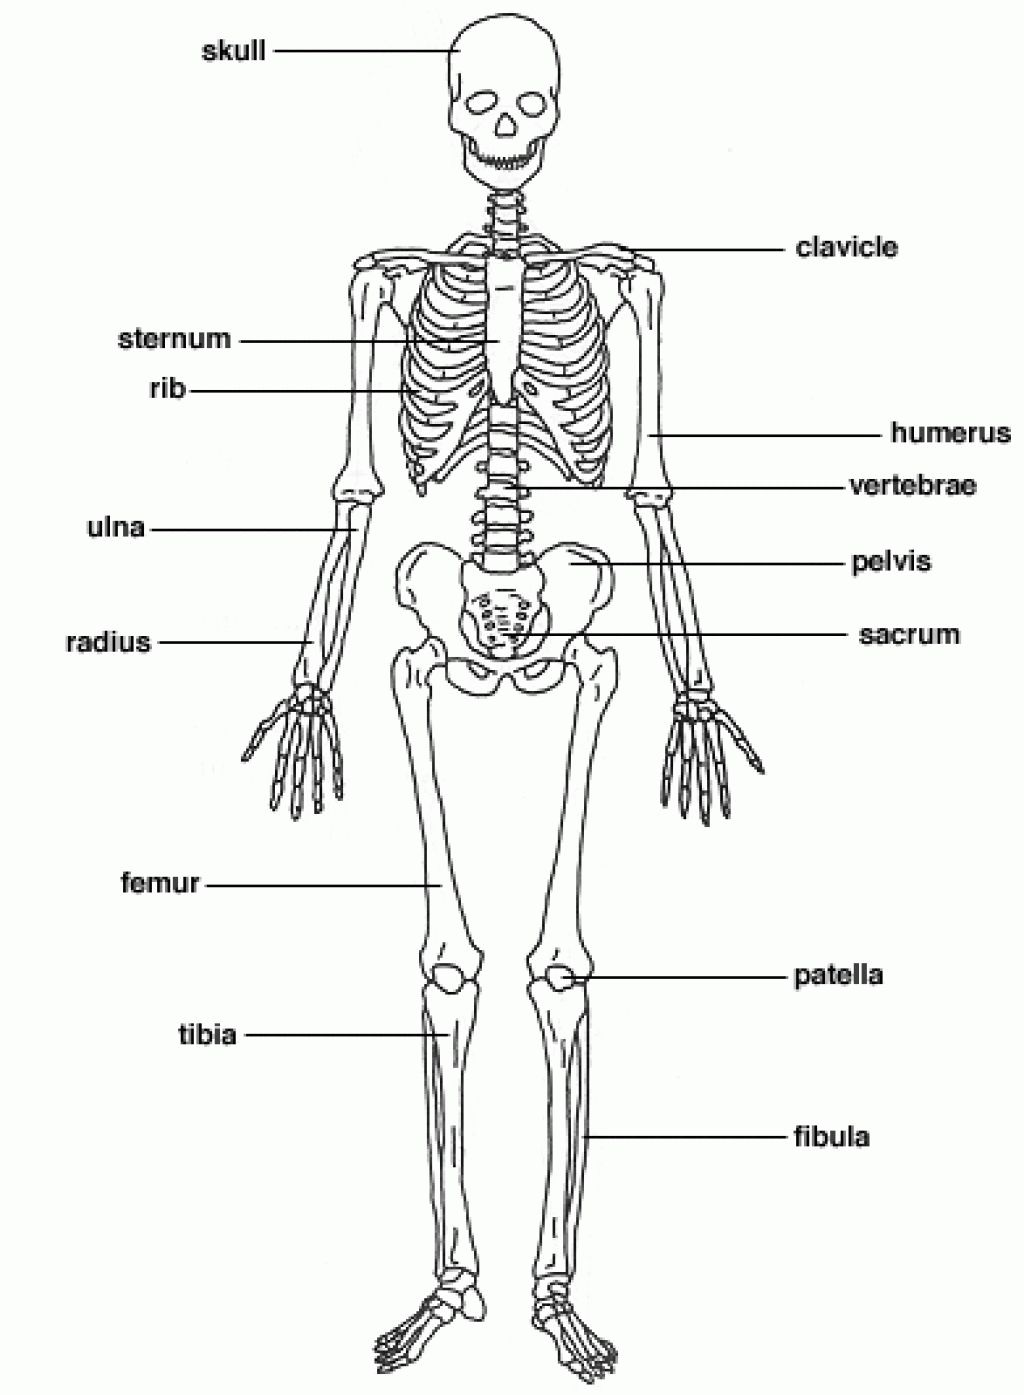 the skeletal system diagram labeled the skeletal system diagram labeled skeleton system diagrams labeled diagram [ 1024 x 1395 Pixel ]